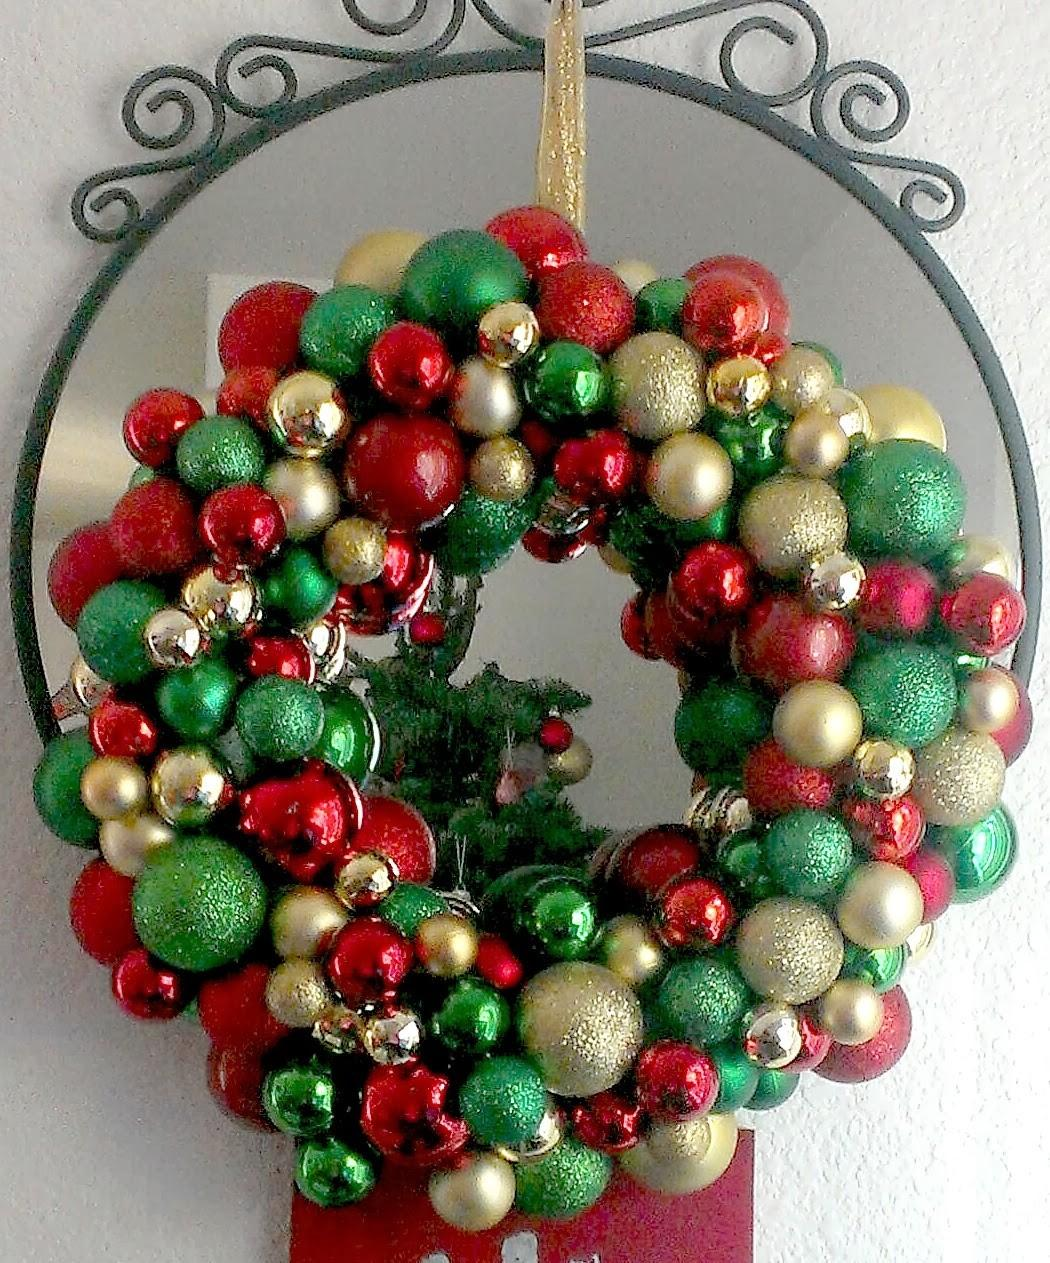 Livelovediy Diy Christmas Ornament Wreath Ideas